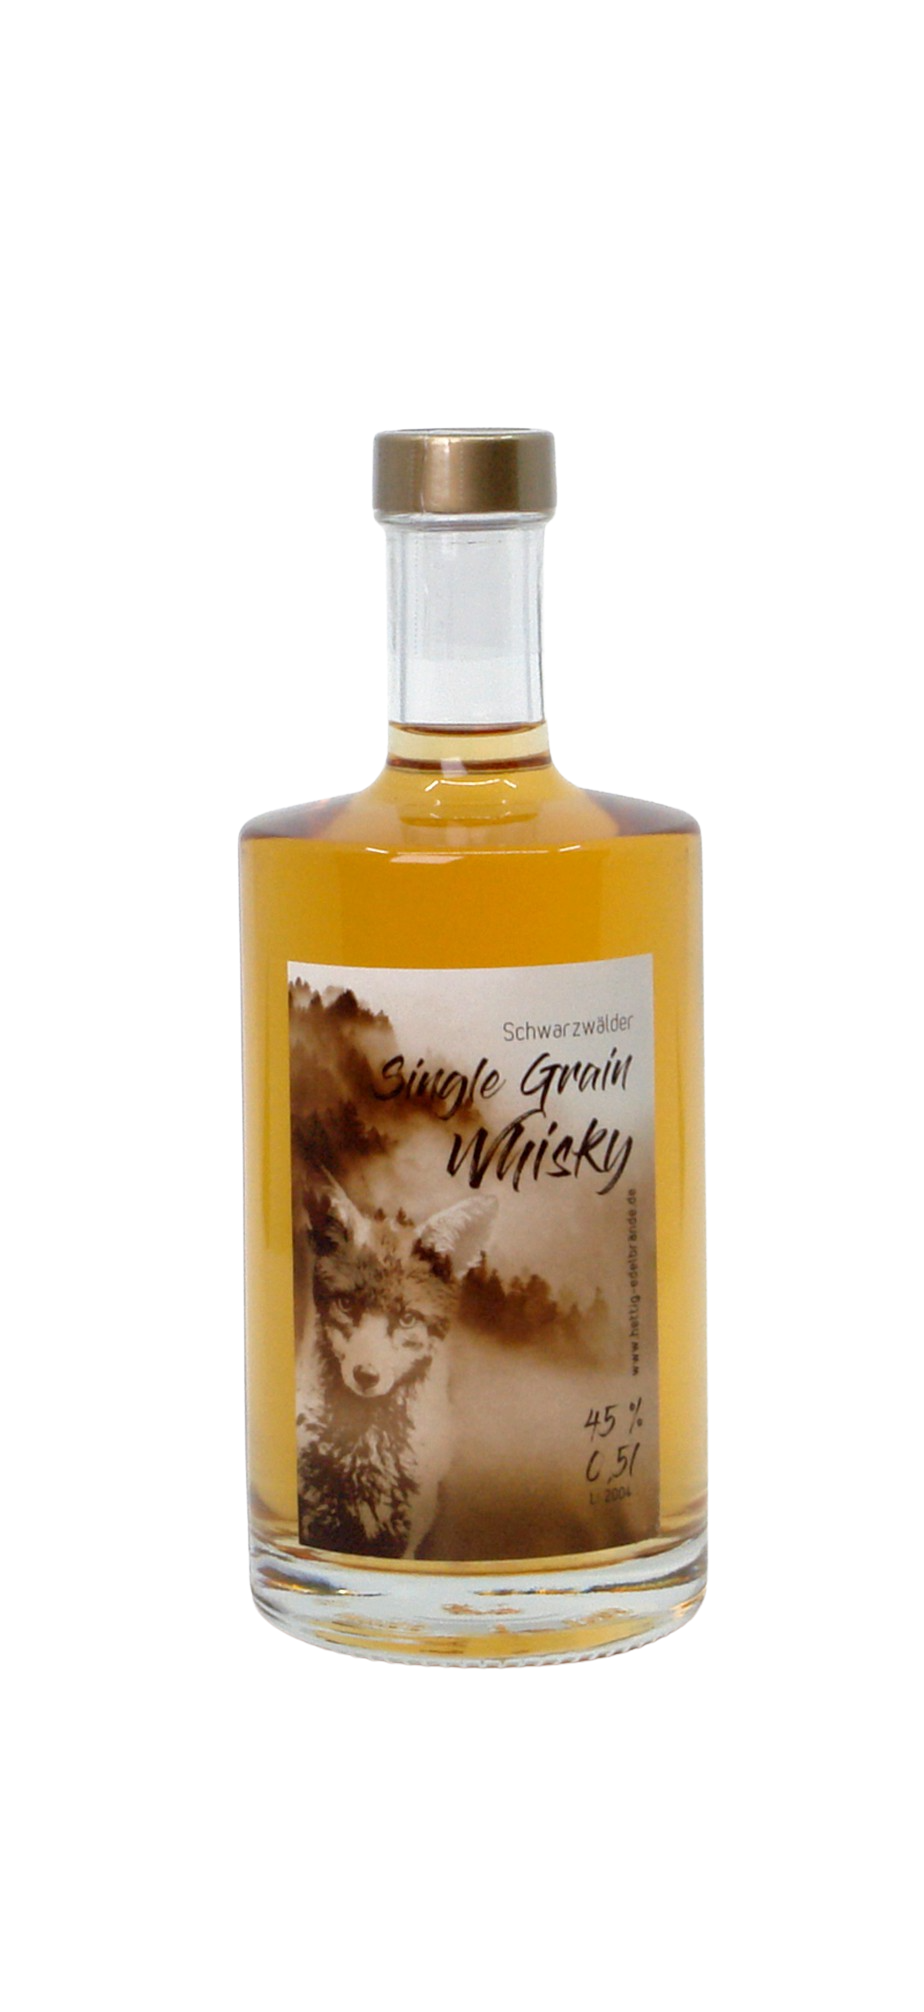 Single Grain Whisky